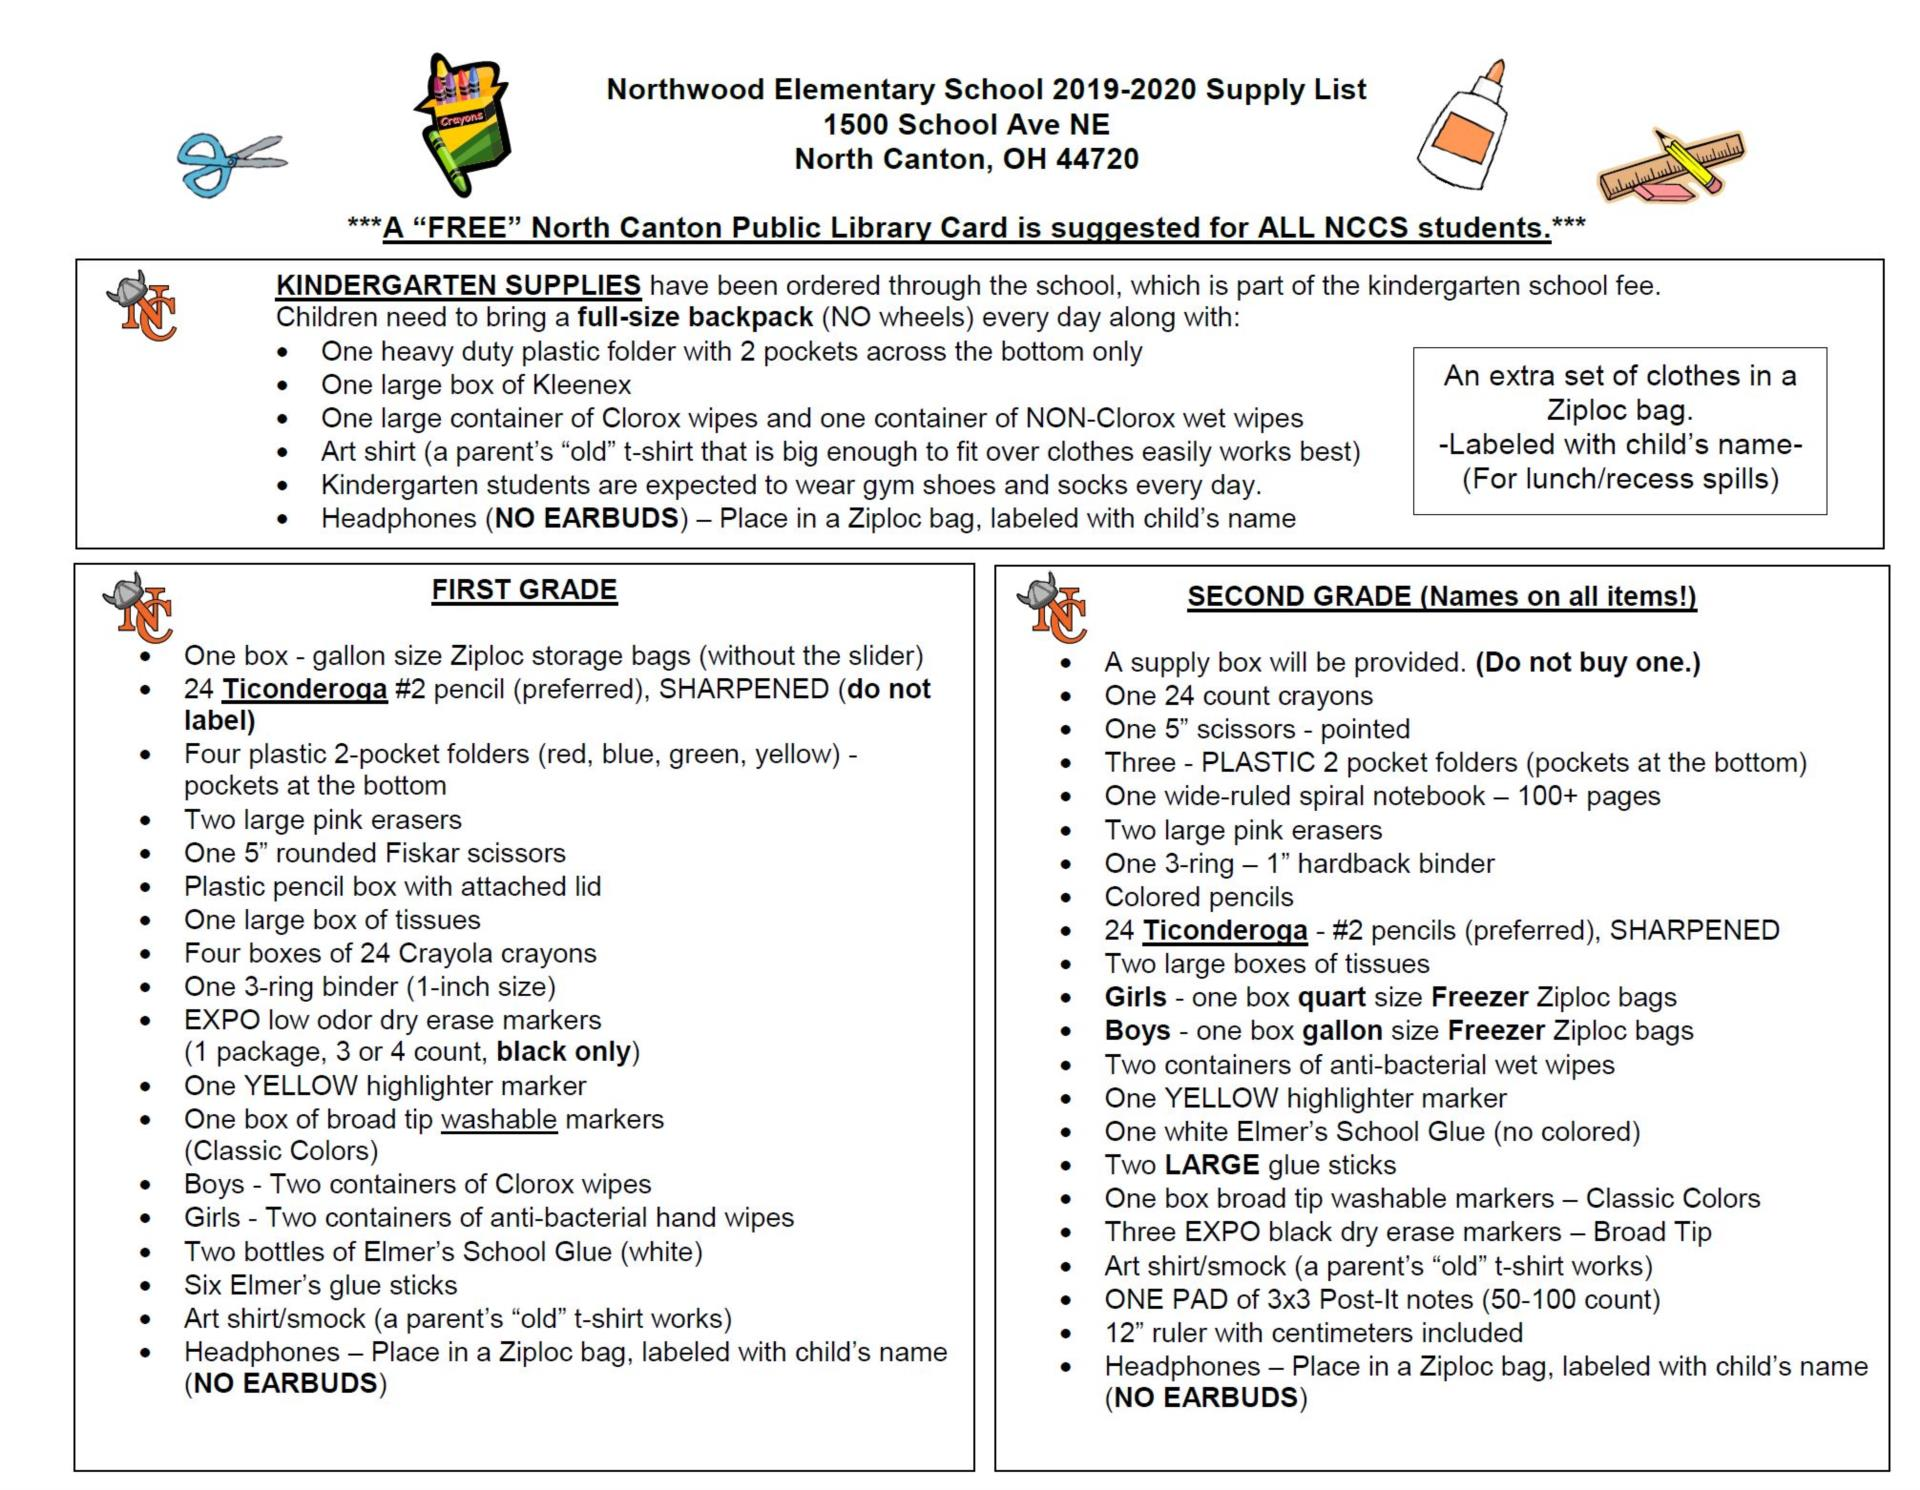 Photo of the supply list for grades K-2